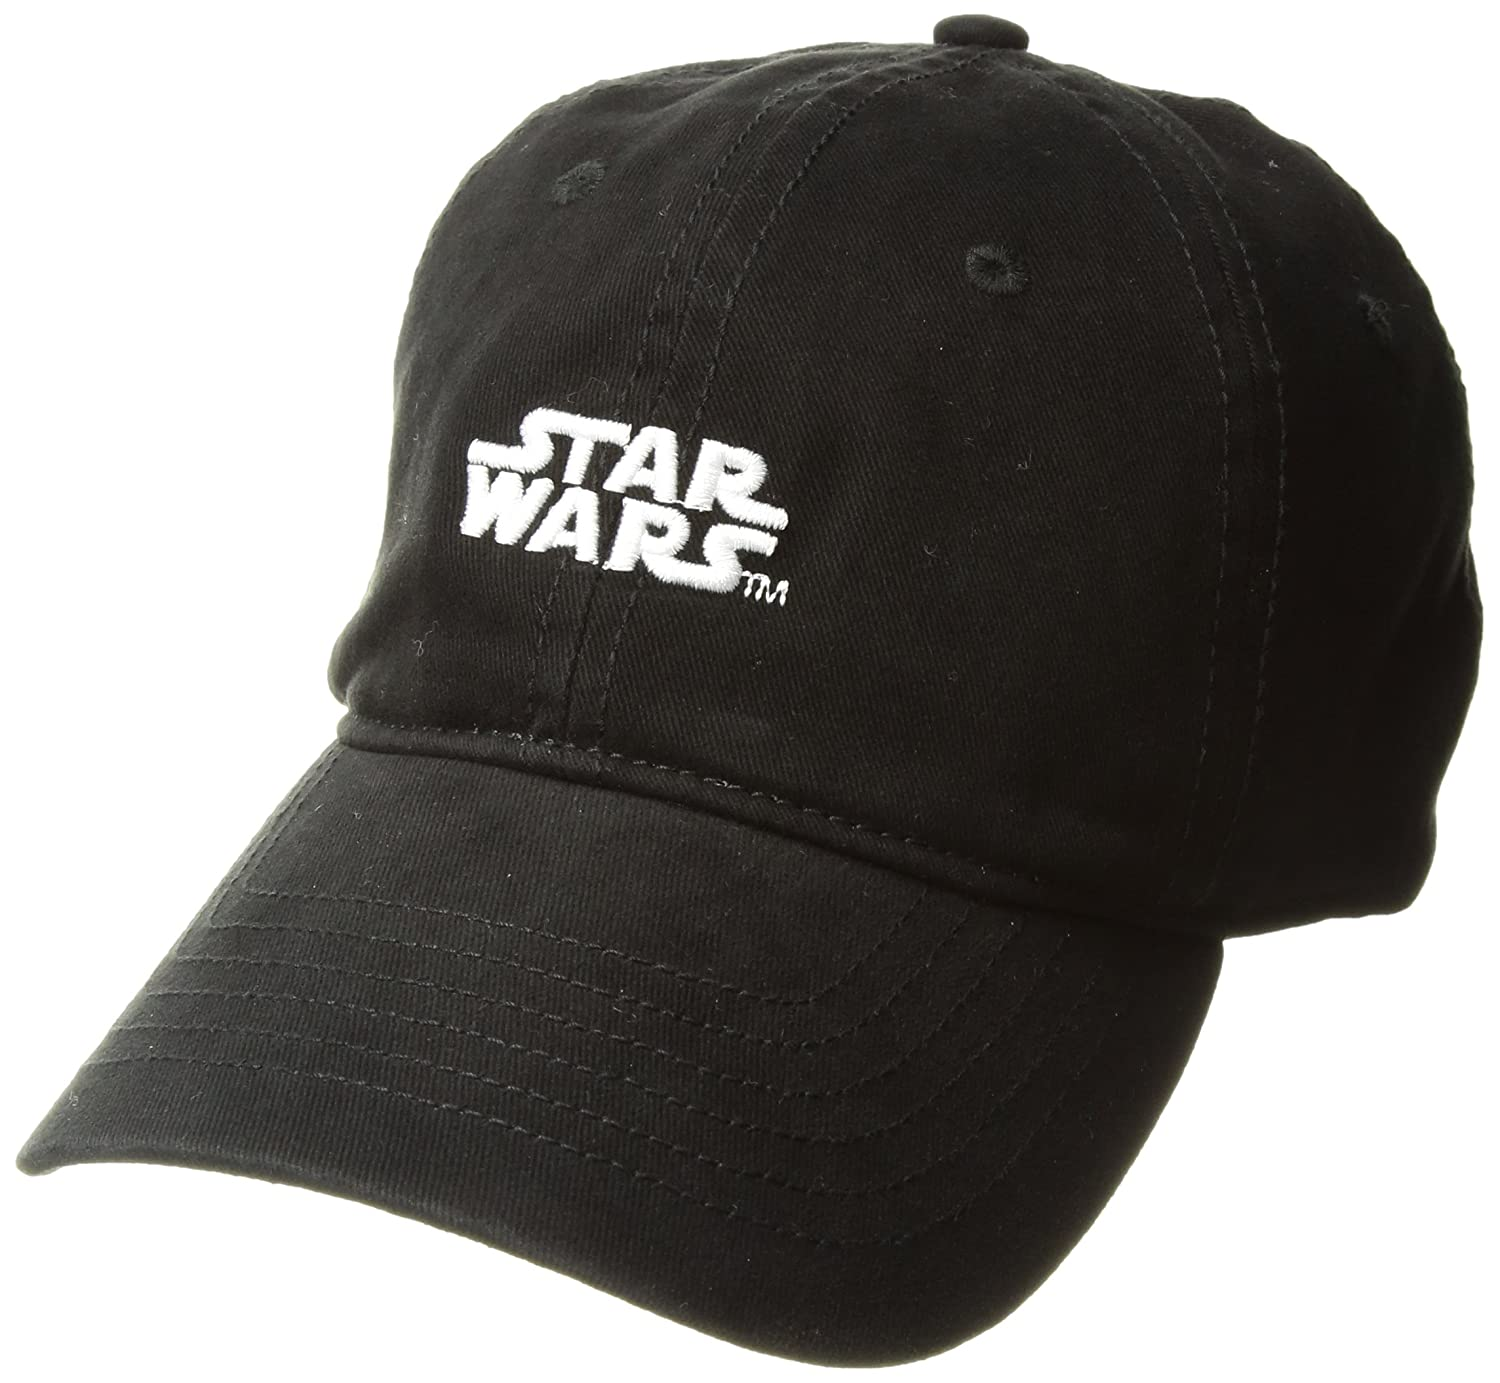 Star Wars Mens Stormtrooper Embroidery Dad Baseball Cap, Black ...